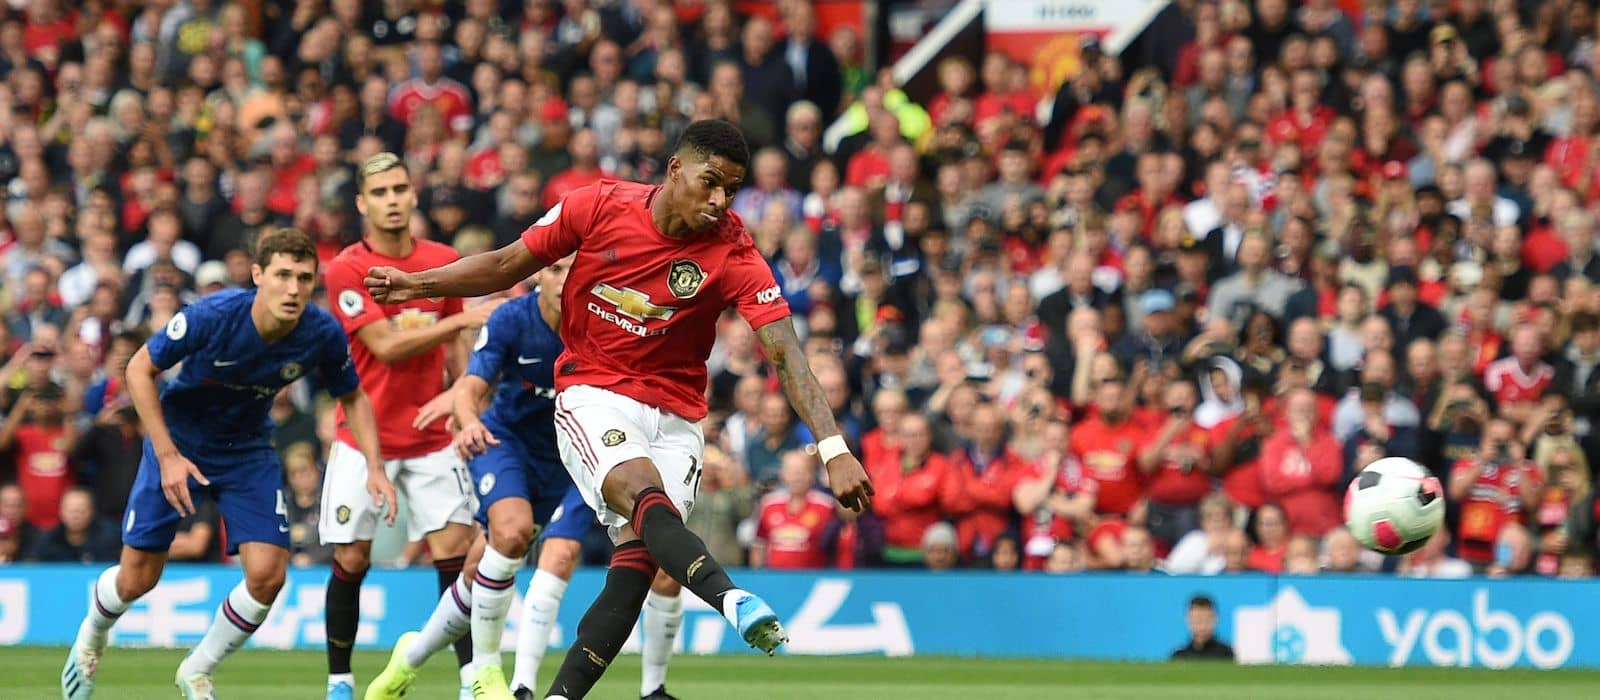 Gary Neville: Anthony Martial can succeed as a striker